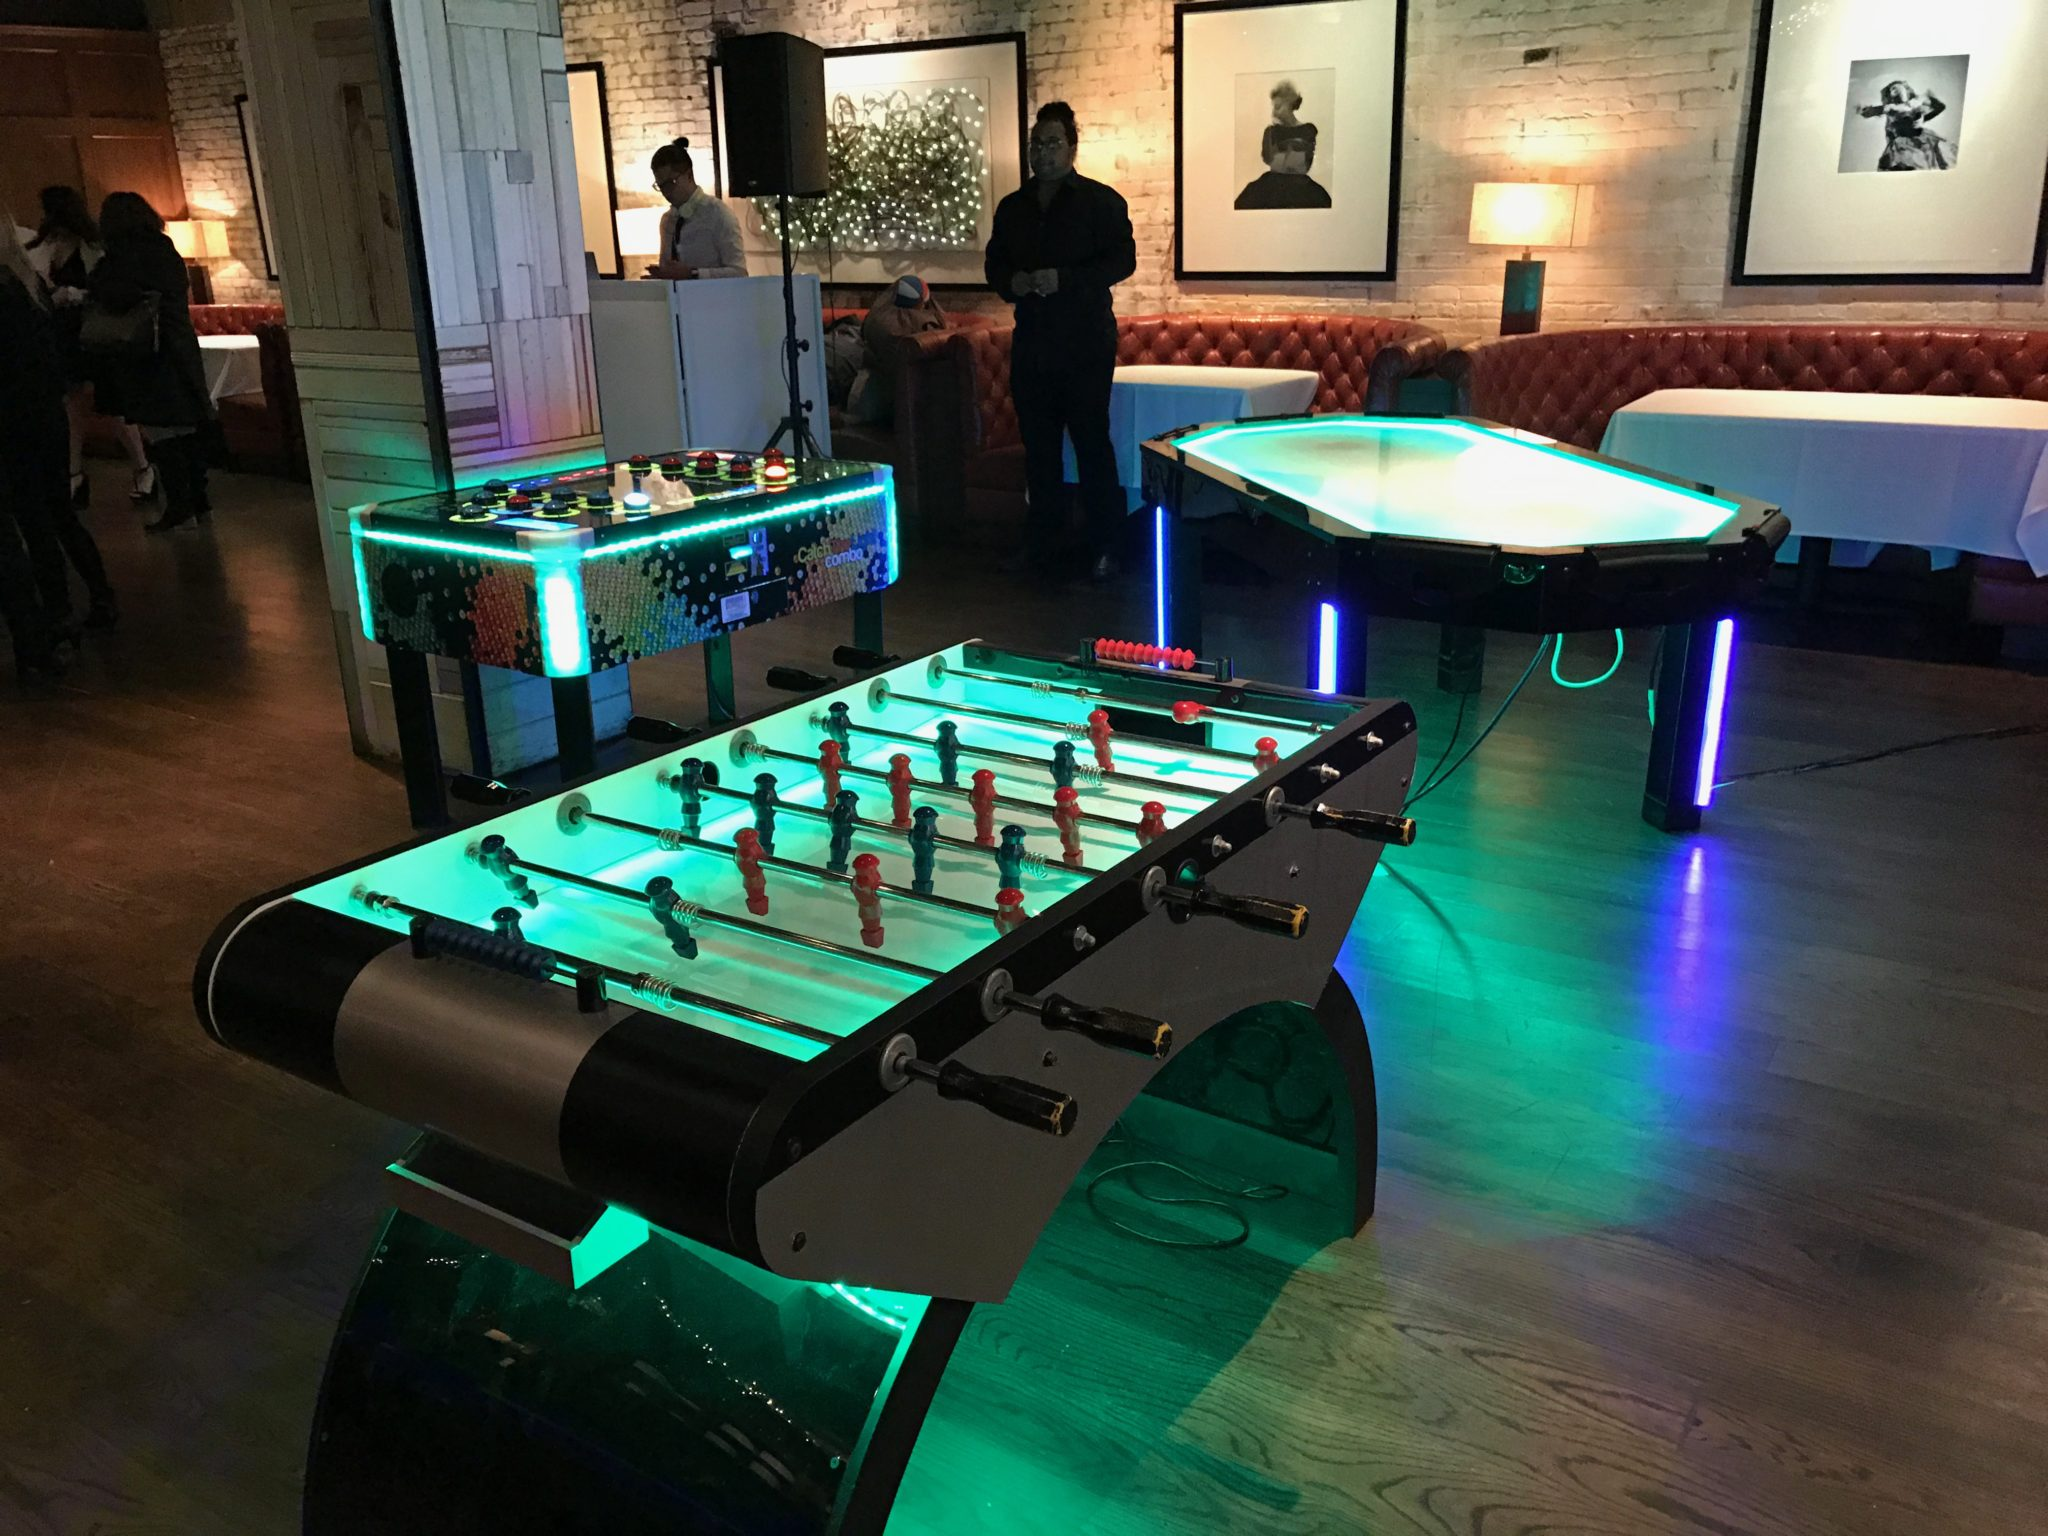 LED Foosball, LED Air Hockey and Catch The Light Combo Event Planning NYC, Fairfield CT, Hamptons, Weddings, Bar Mitzvah, Bat Mitzvah, Corporate Events, Sweet 16, Event DJs, Bands